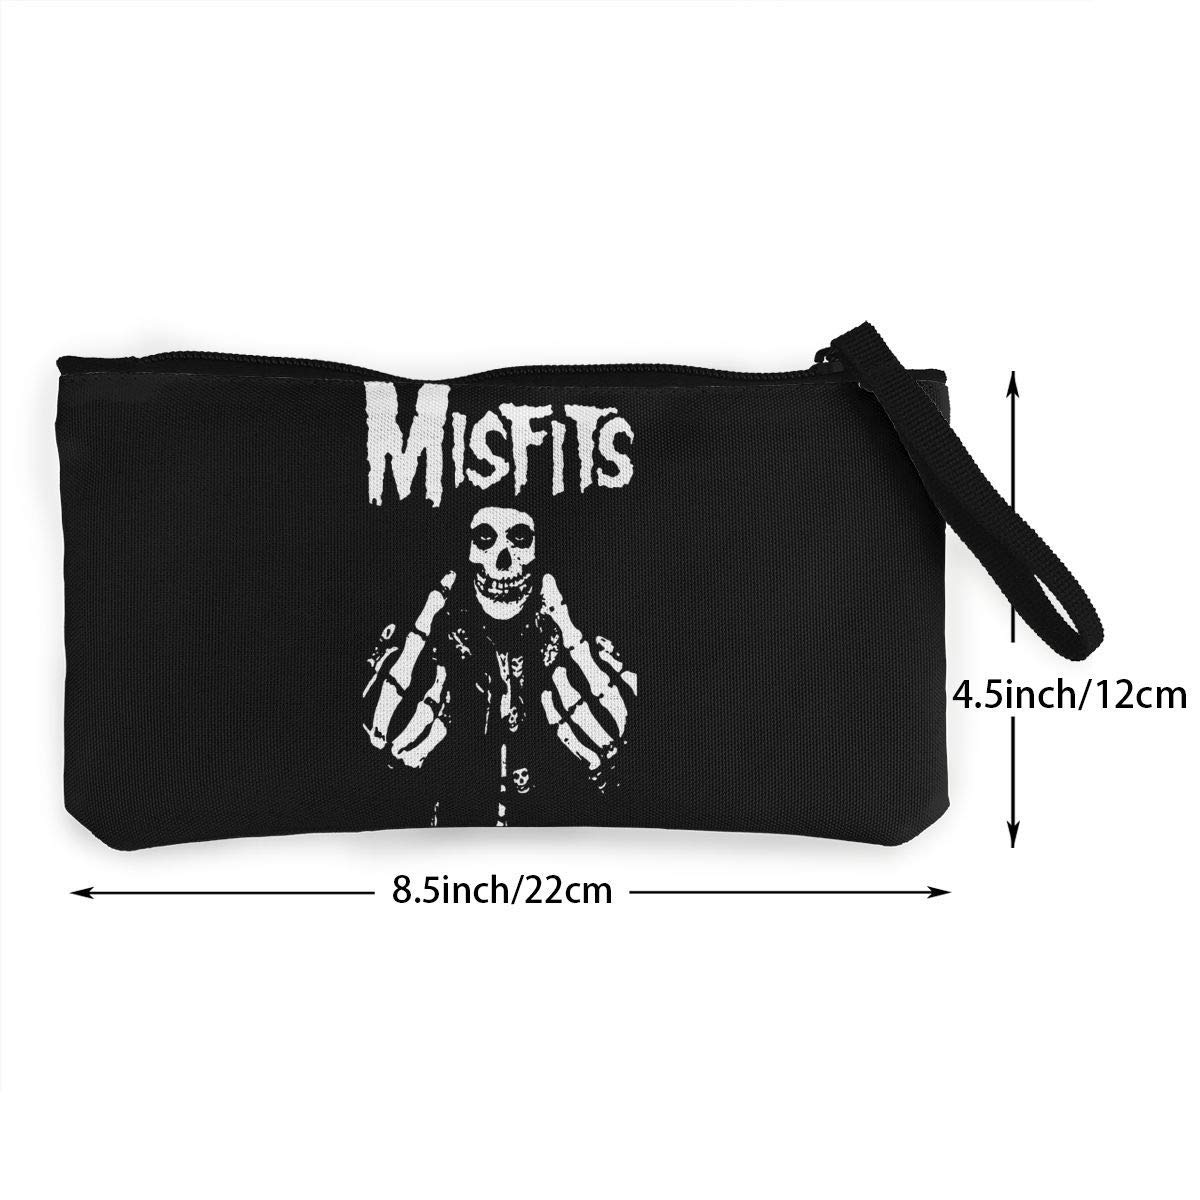 Misfits Fxx Skull Logo Canvas Cash Coin Purse Make Up Bag Cellphone Bag With Zipper And Handle